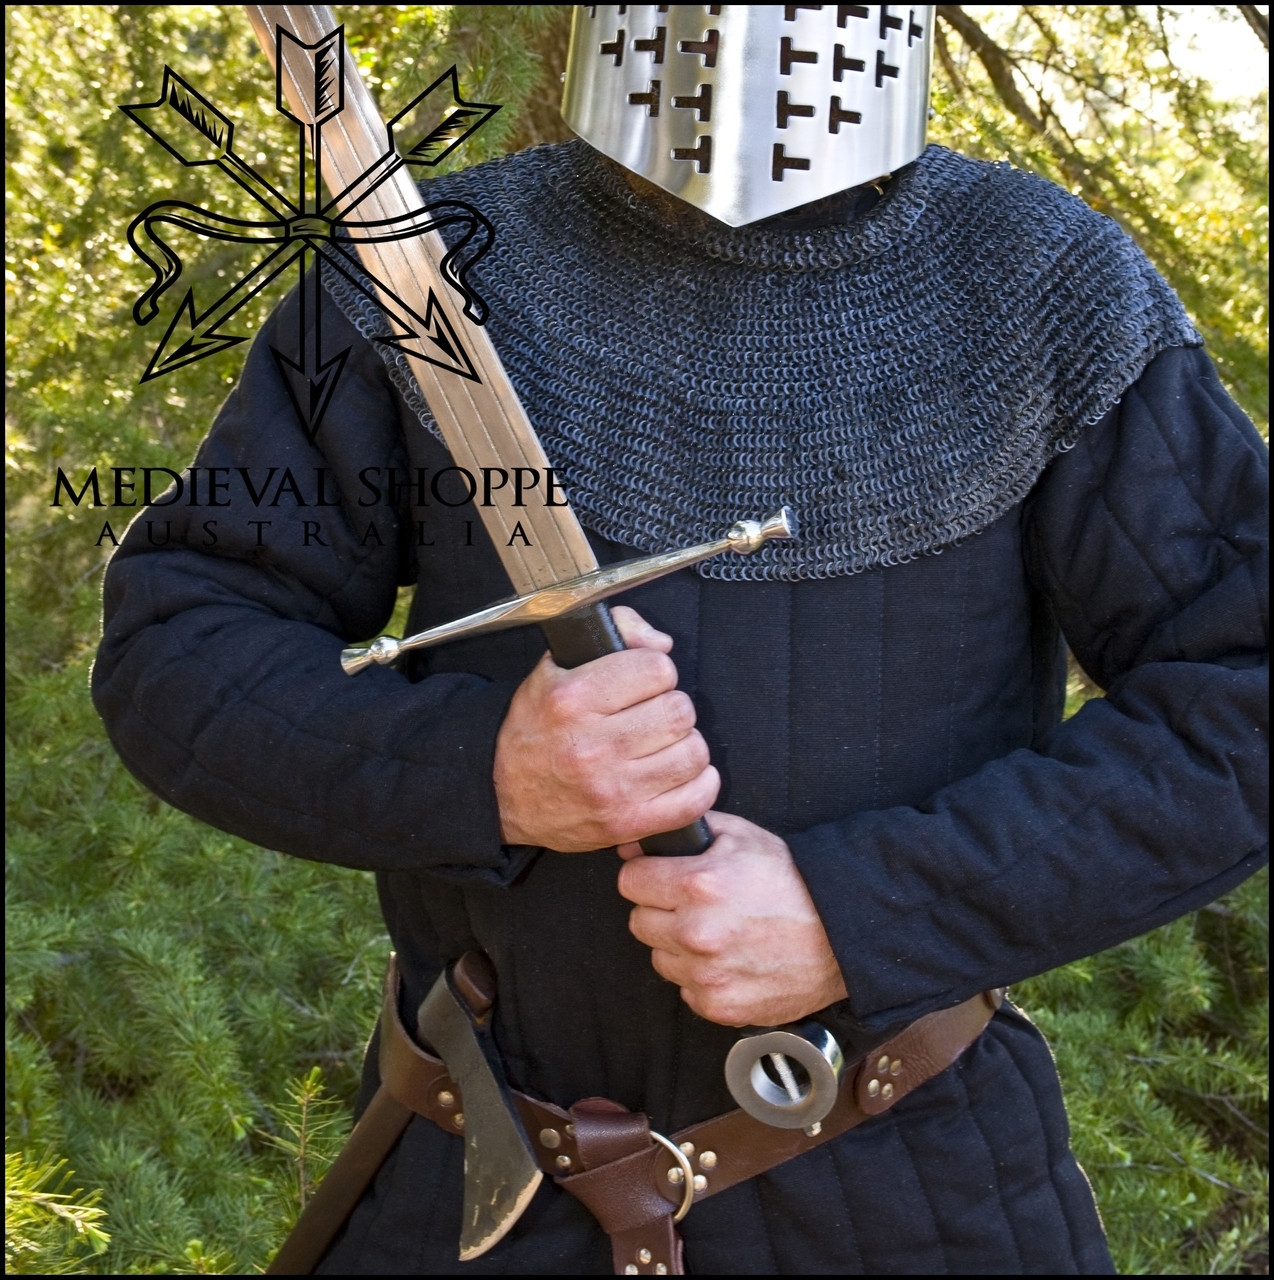 The gallowglasses (also spelled galloglass, gallowglas or galloglas; from Irish: gallóglaigh meaning foreign warriors) were a class of elite mercenary warriors who were principally members of the Norse-Gaelic clans of Scotland between the mid 13th century and late 16th century.